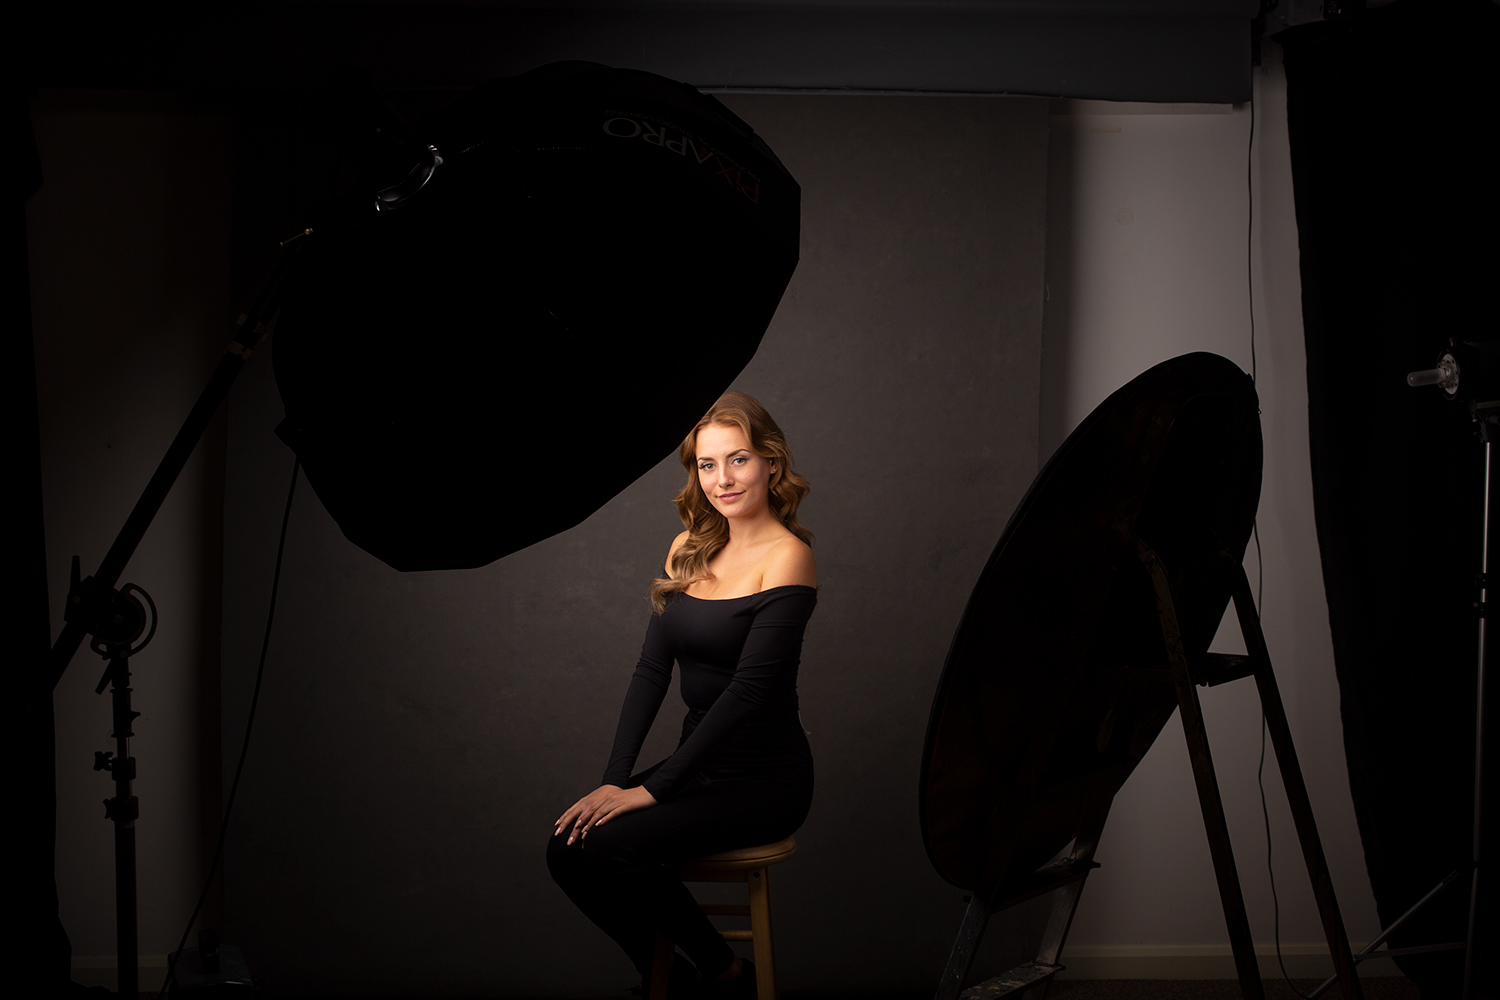 Image: For soft light in the studio, big modifiers in close will do the job just great.